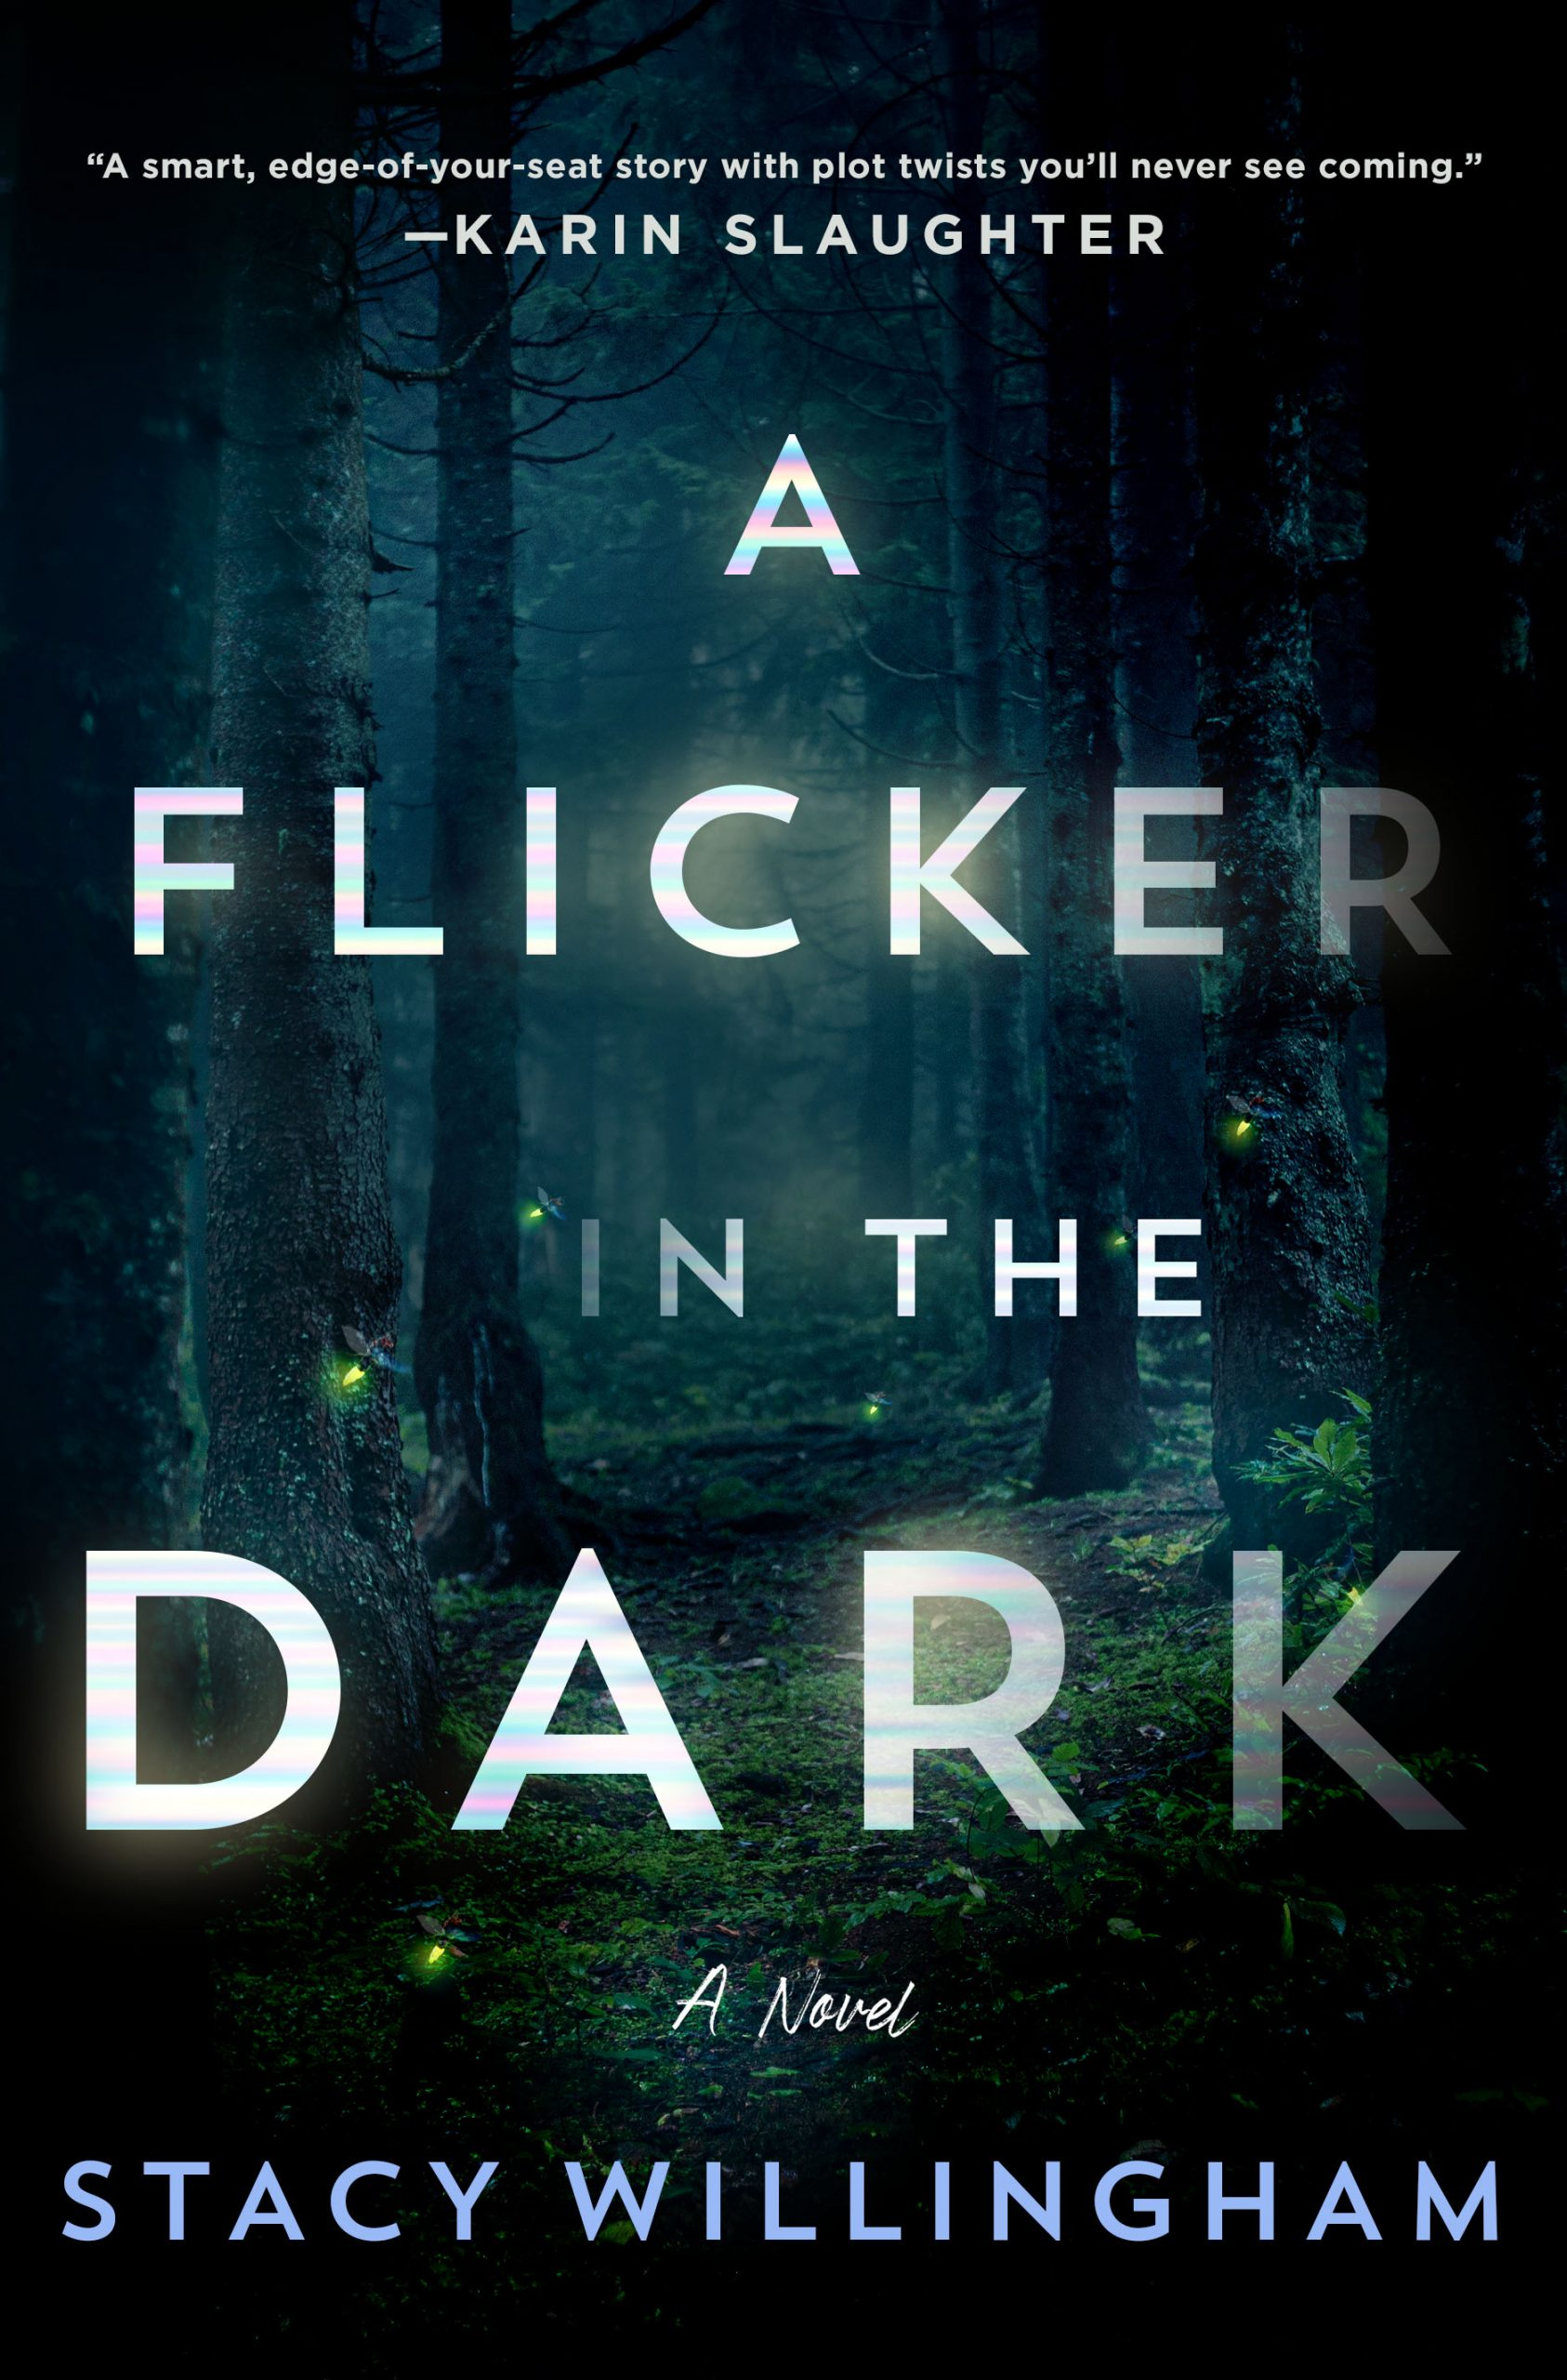 A Flicker In The Dark By Stacy Willingham Release Date? 2022 Debut Releases